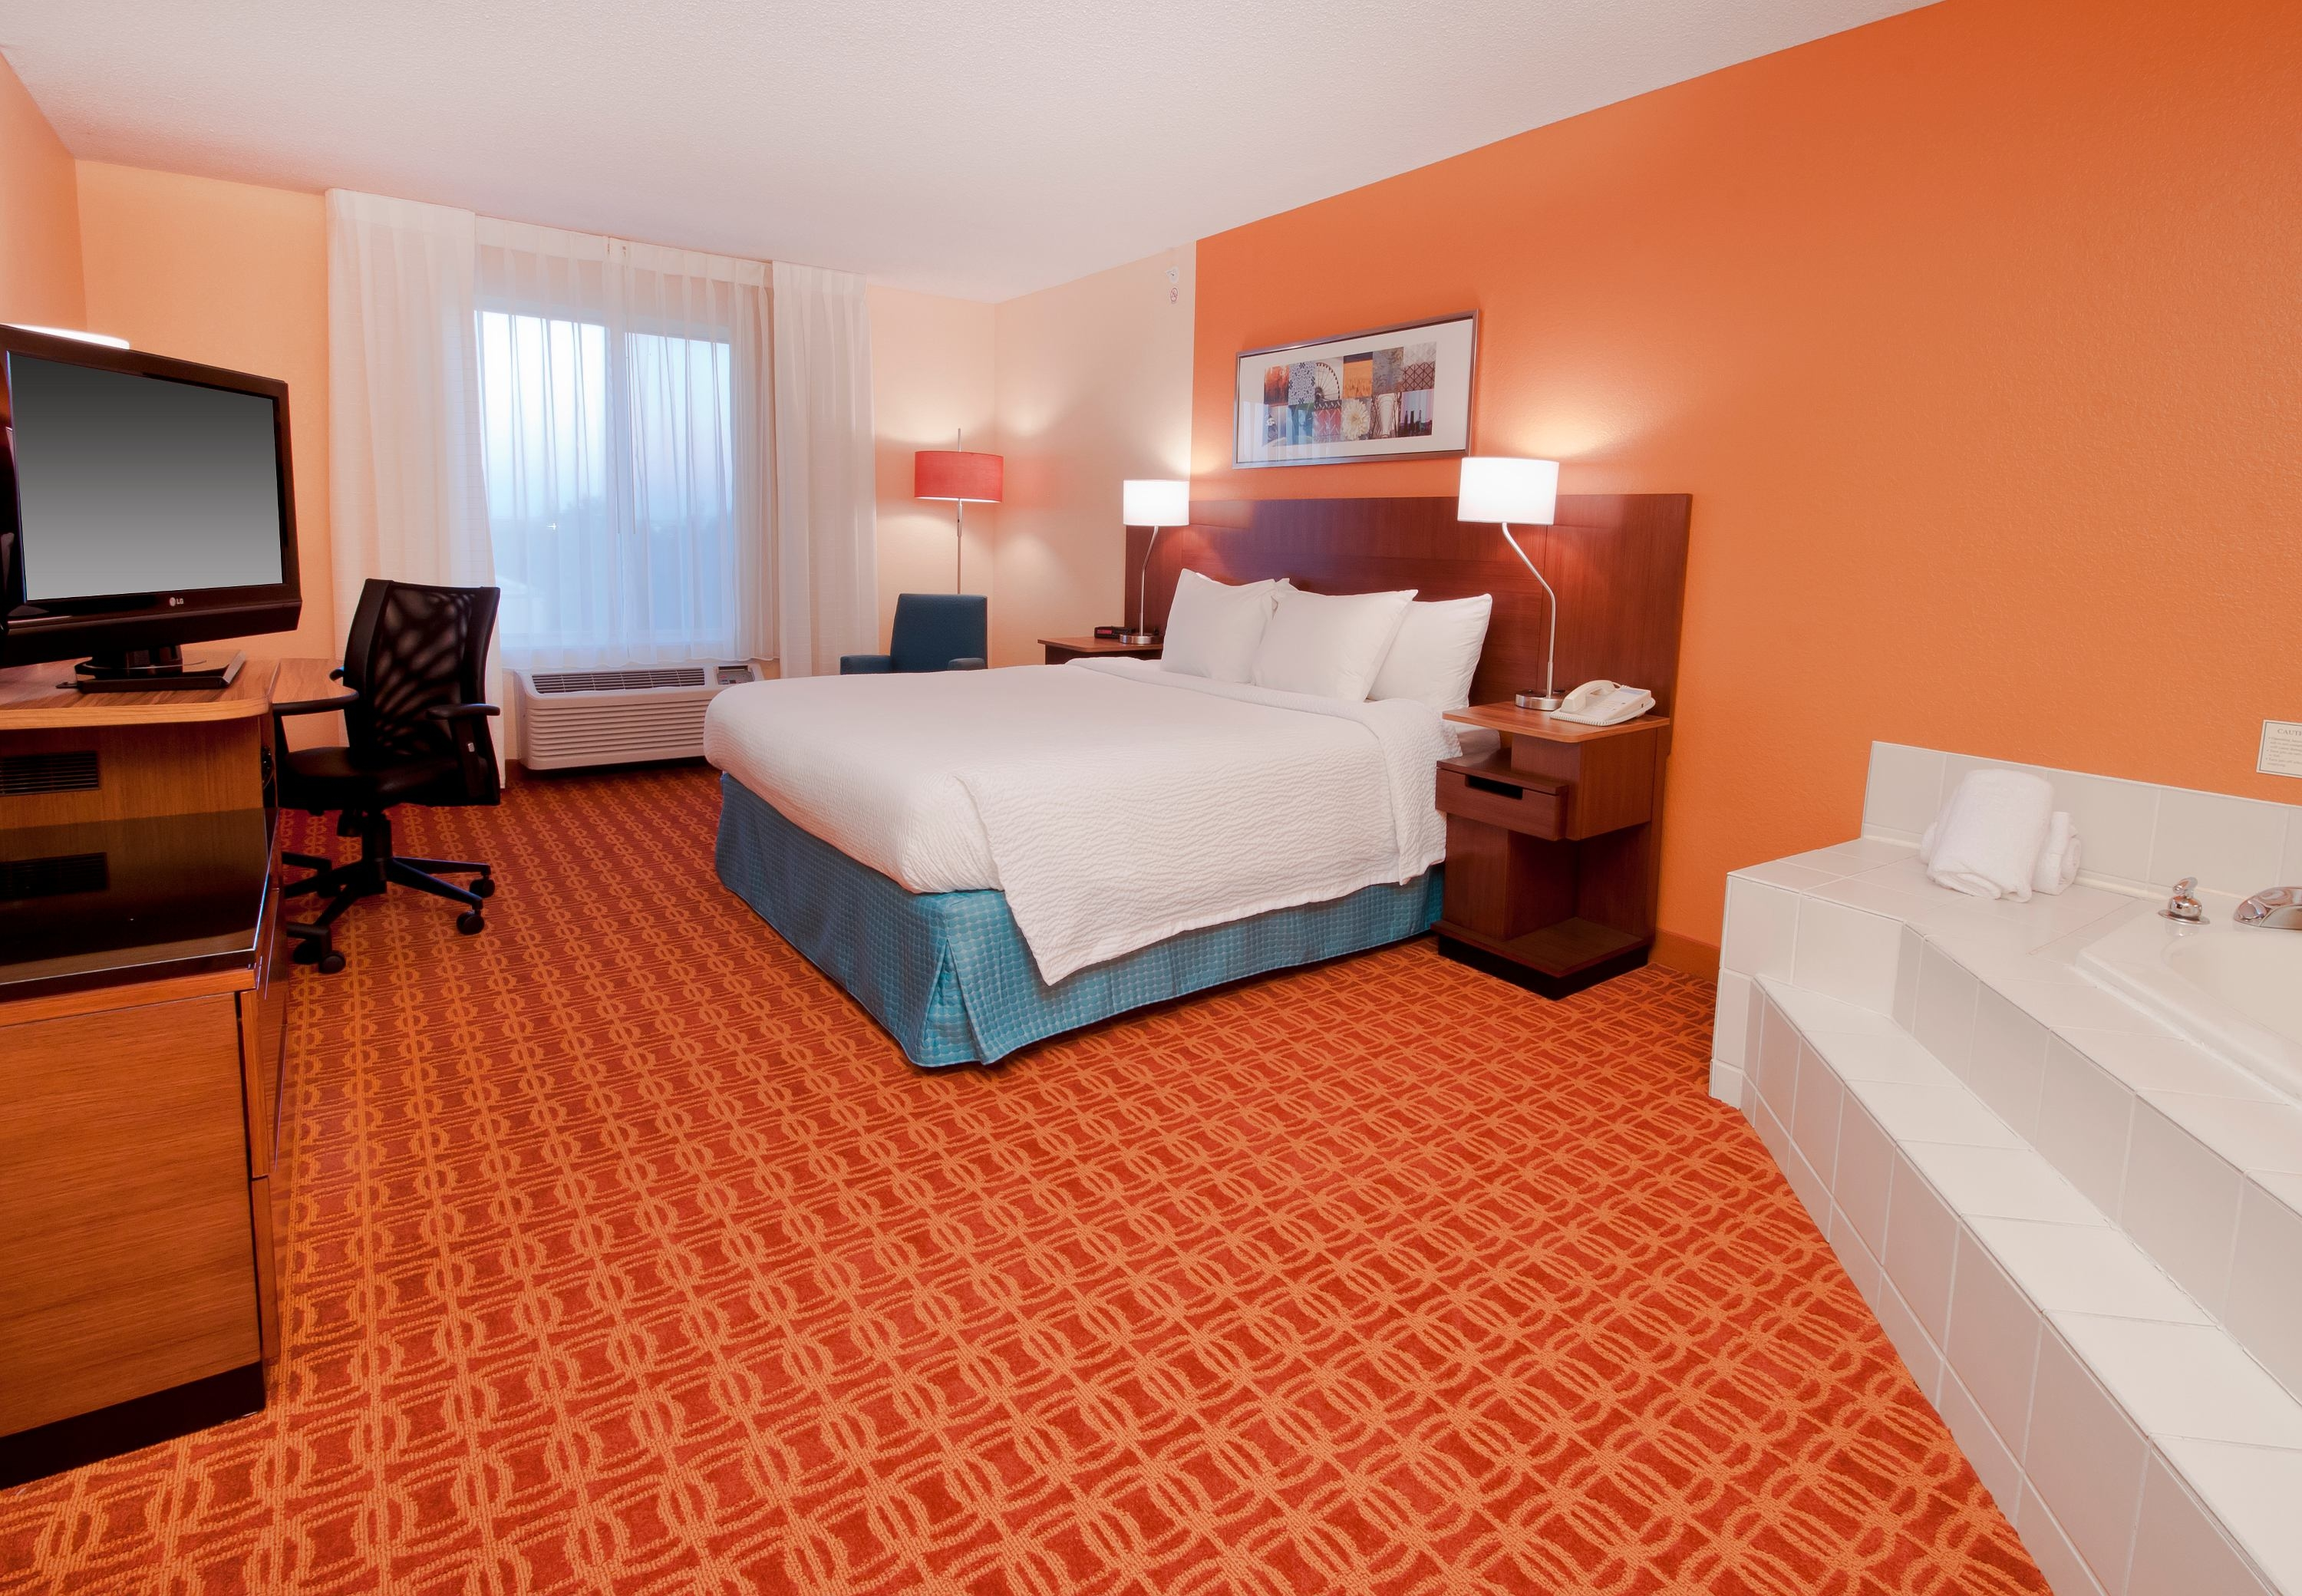 Fairfield Inn & Suites by Marriott Fort Worth/Fossil Creek image 12